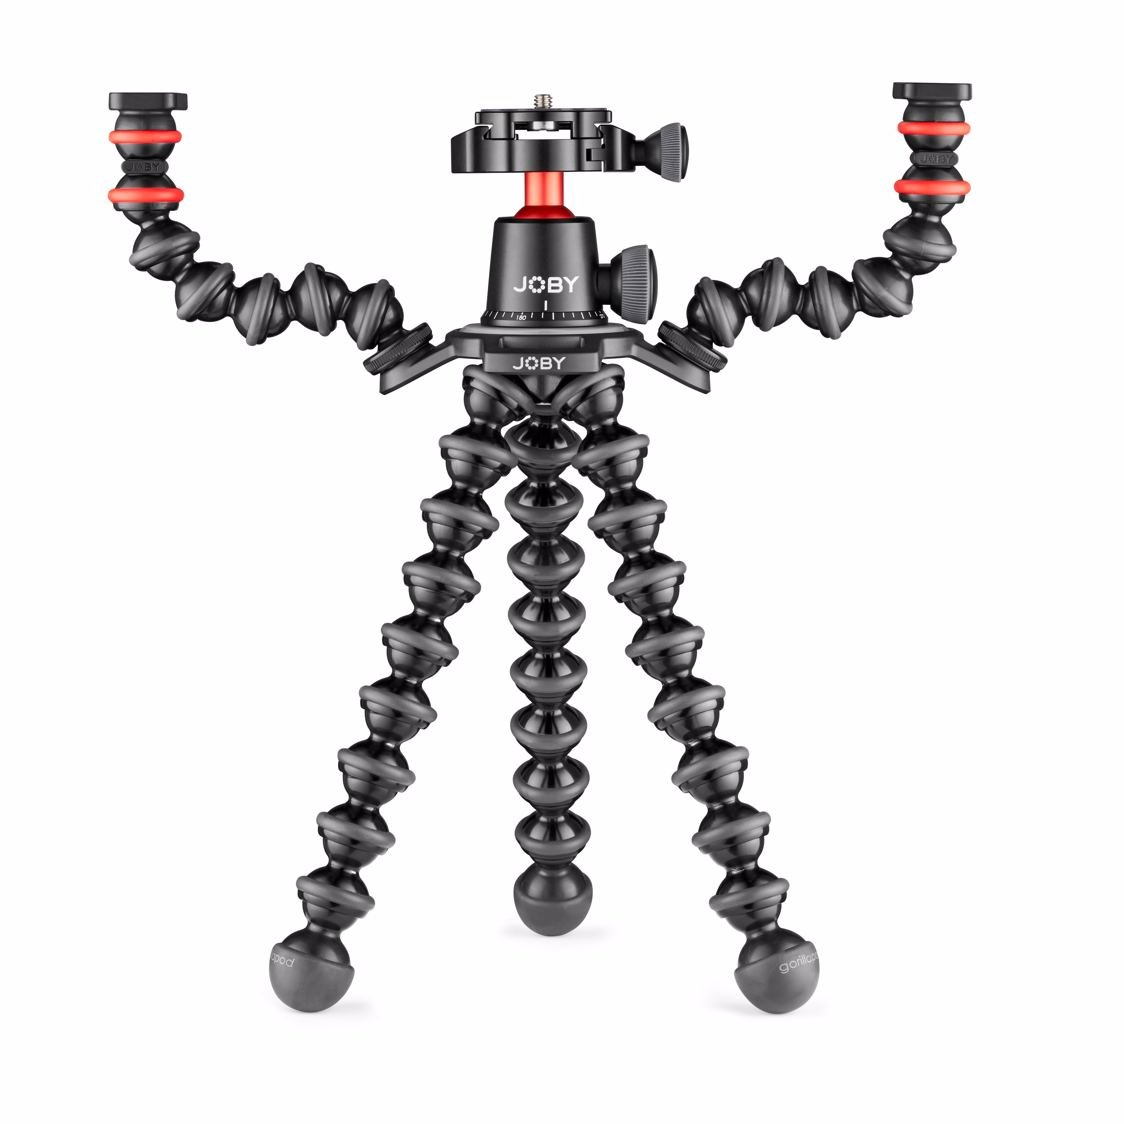 JOBY - GorillaPod 3K PRO Rig - Ultimate Flexible Tripod Rig For Mirrorless Cameras